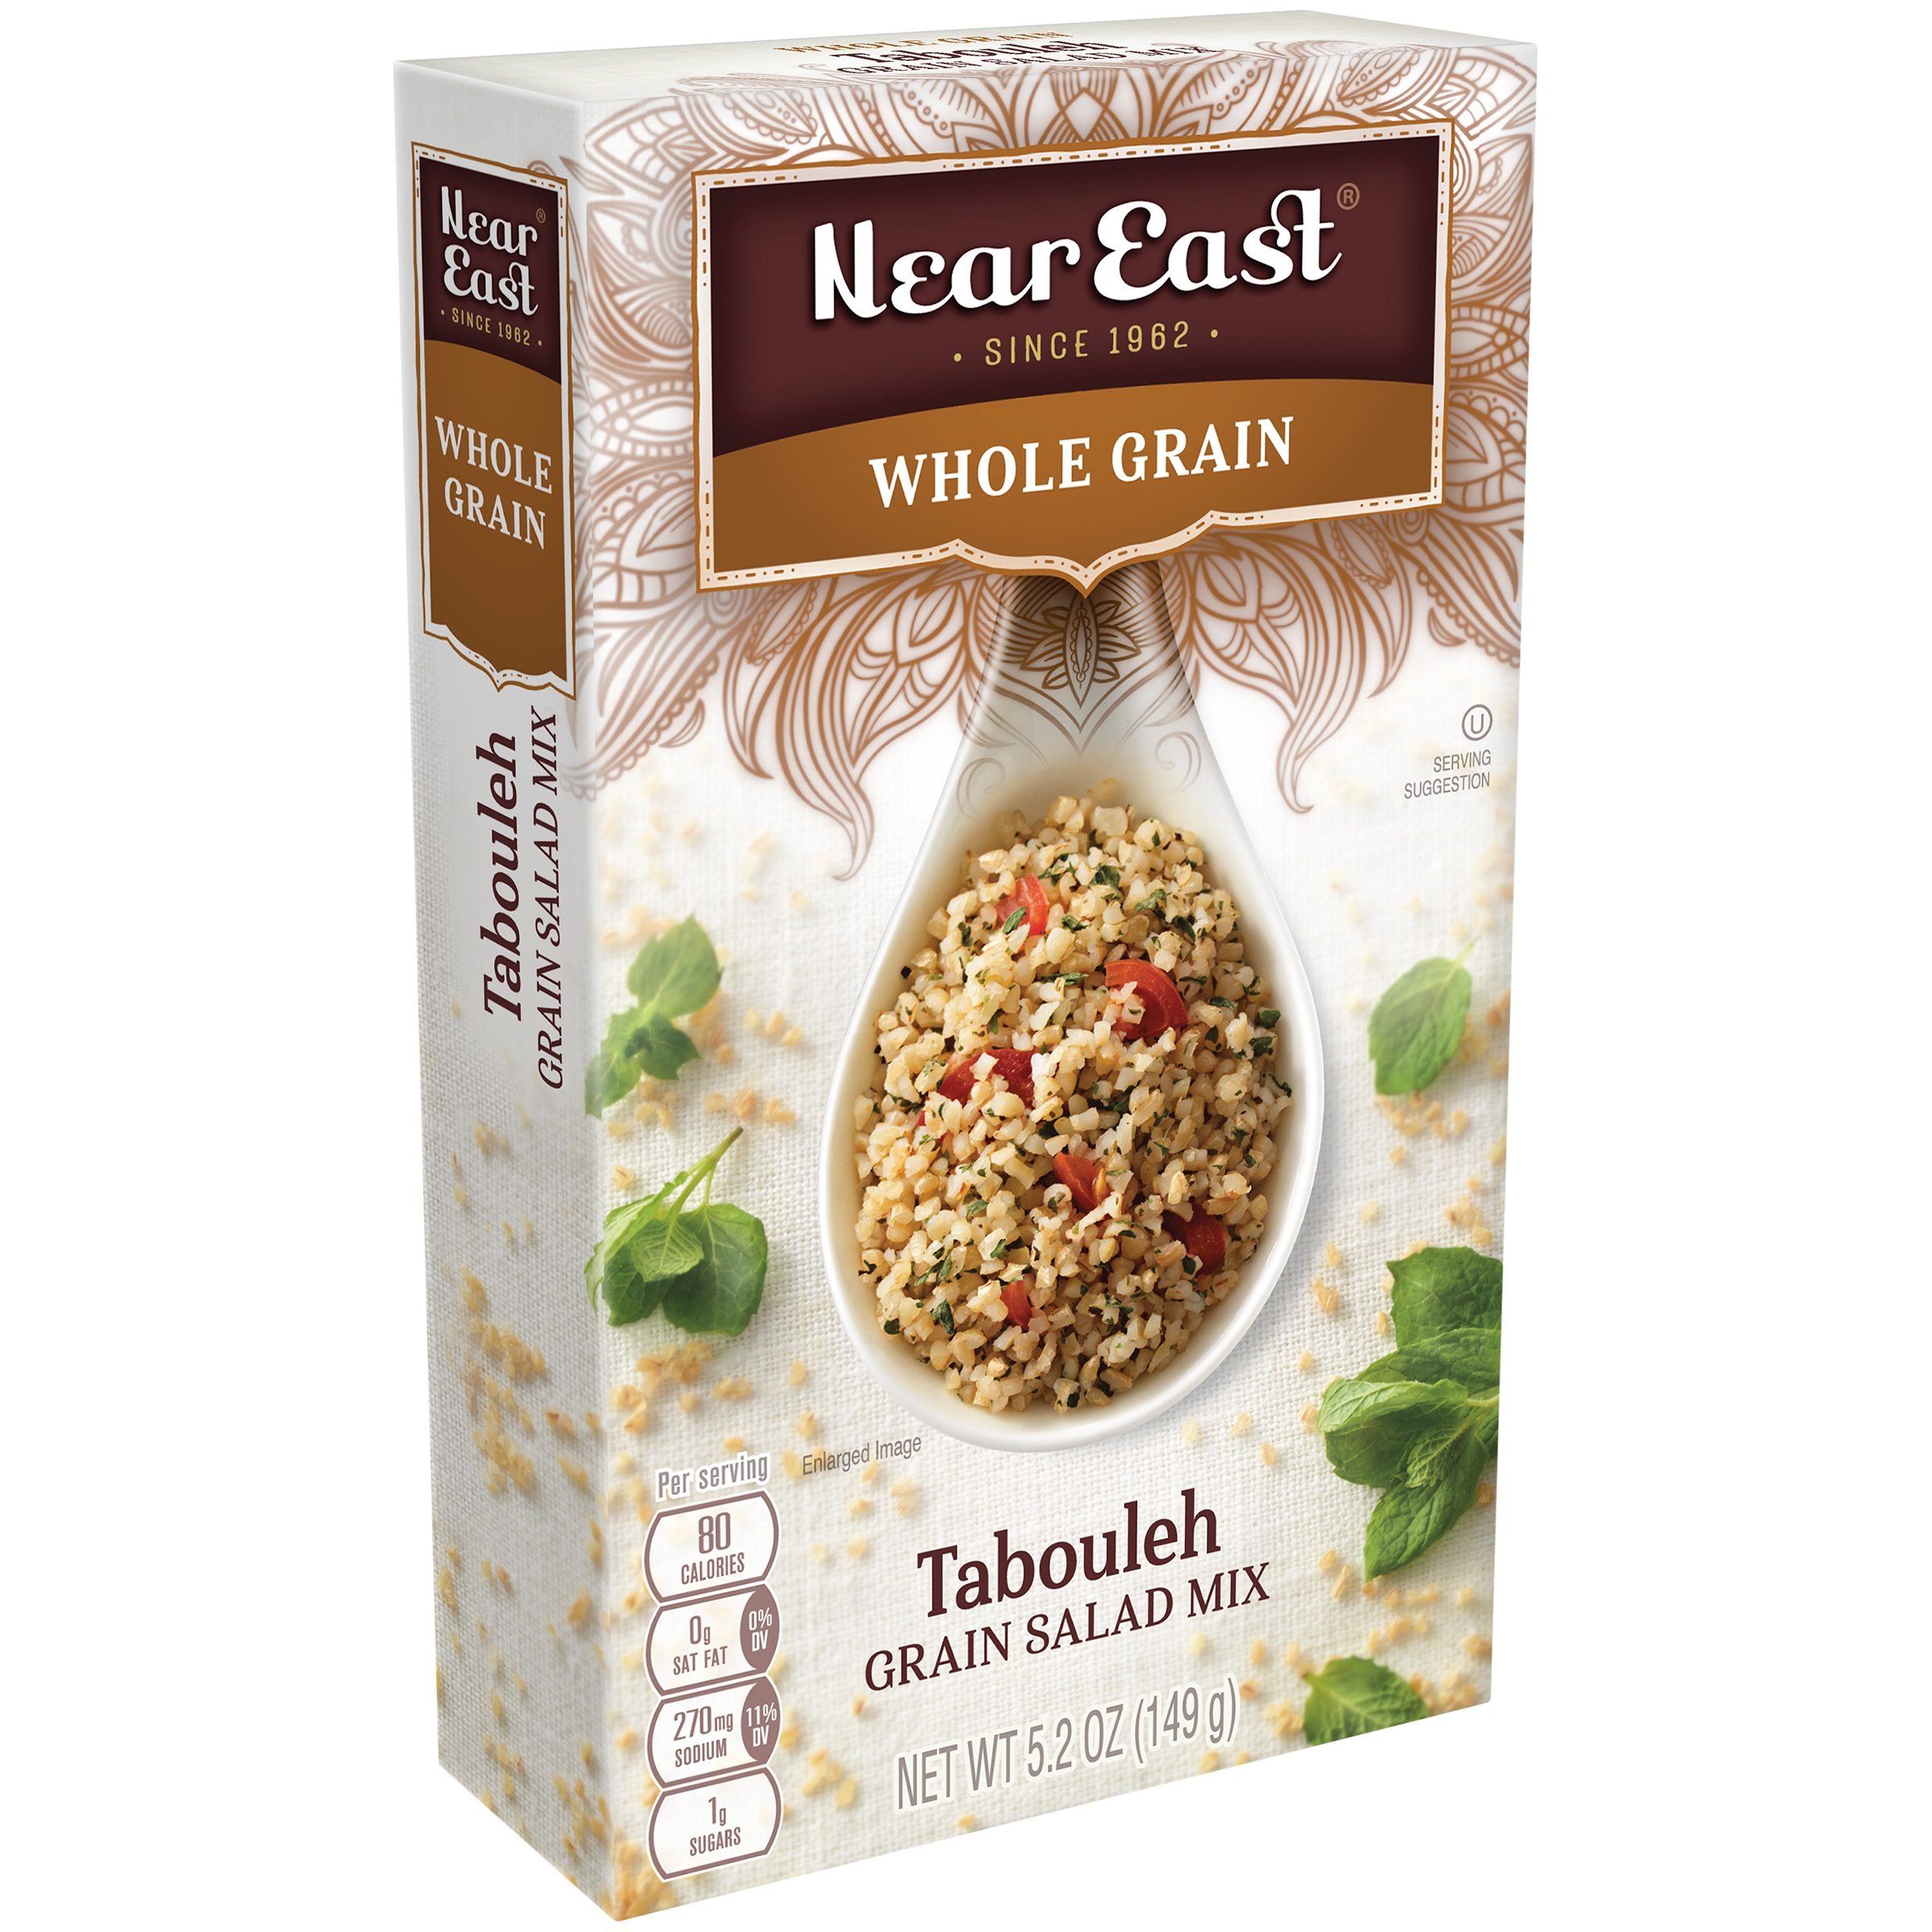 Near East Whole Grain Tabouleh Grain Salad Mix, 5.2 oz Box